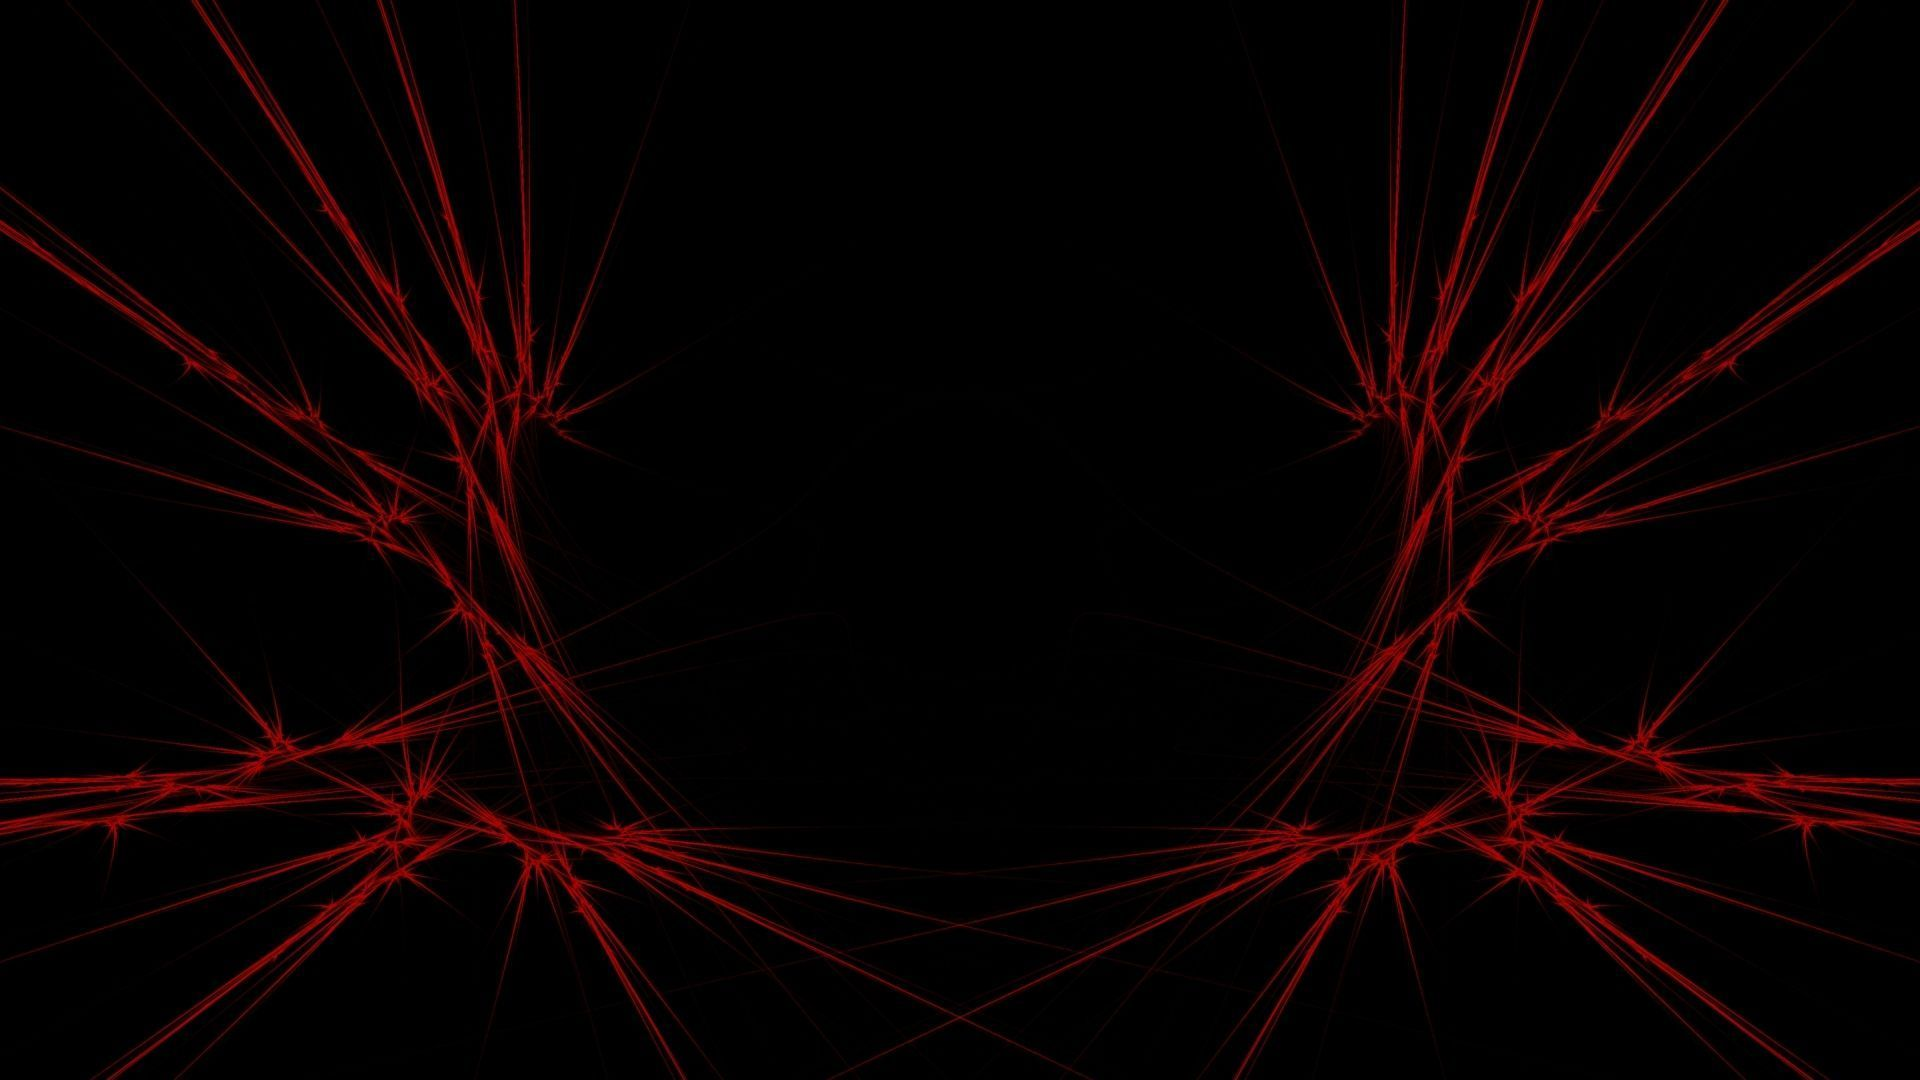 Hd wallpaper red and black - Download Wallpaper 1920x1080 Red Black Abstract Full Hd 1080p Hd